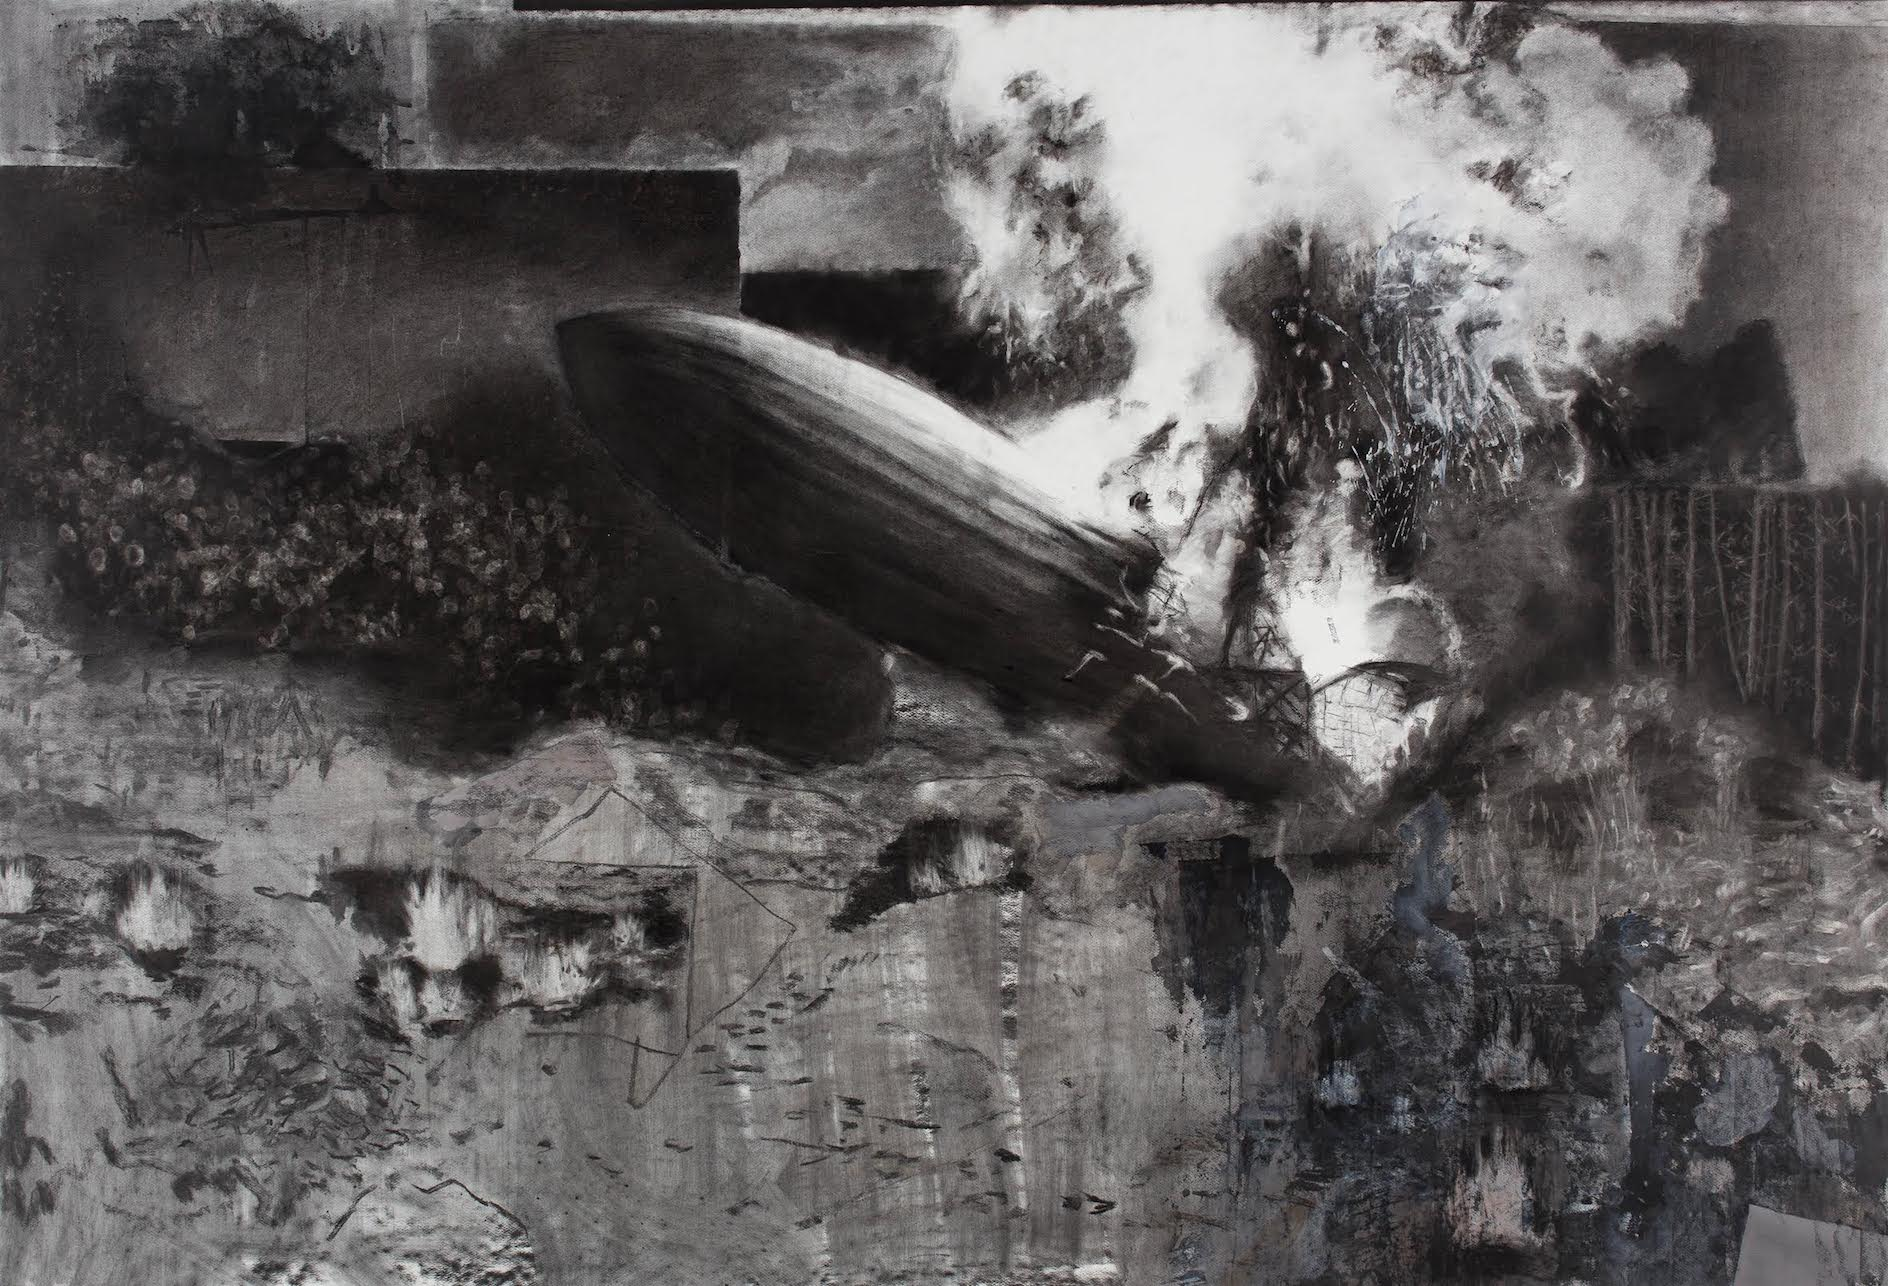 Marcel Rusu, A trip to the moon, 1902-2014, charcoal, pastel and acrylic on paper, 210x117cm, courtesy of the artist and Rosefeld Porcini.